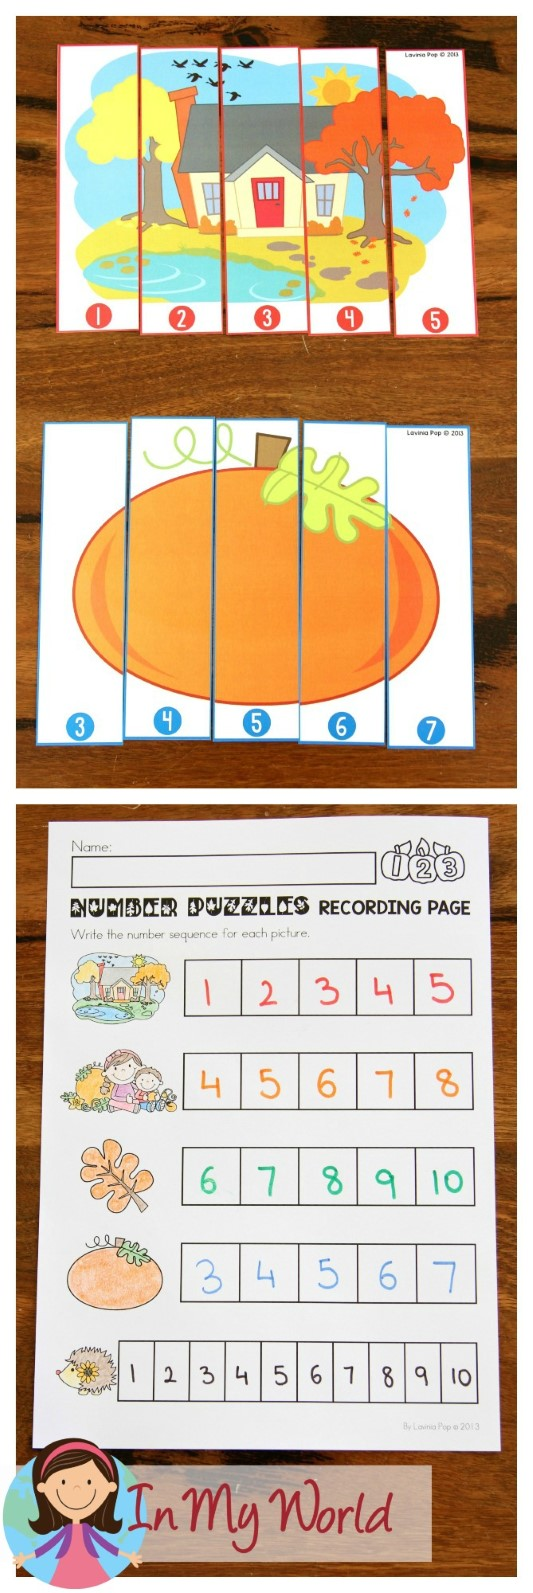 FREE Autumn / Fall Math Centers for Kindergarten. Number puzzles for sequencing.